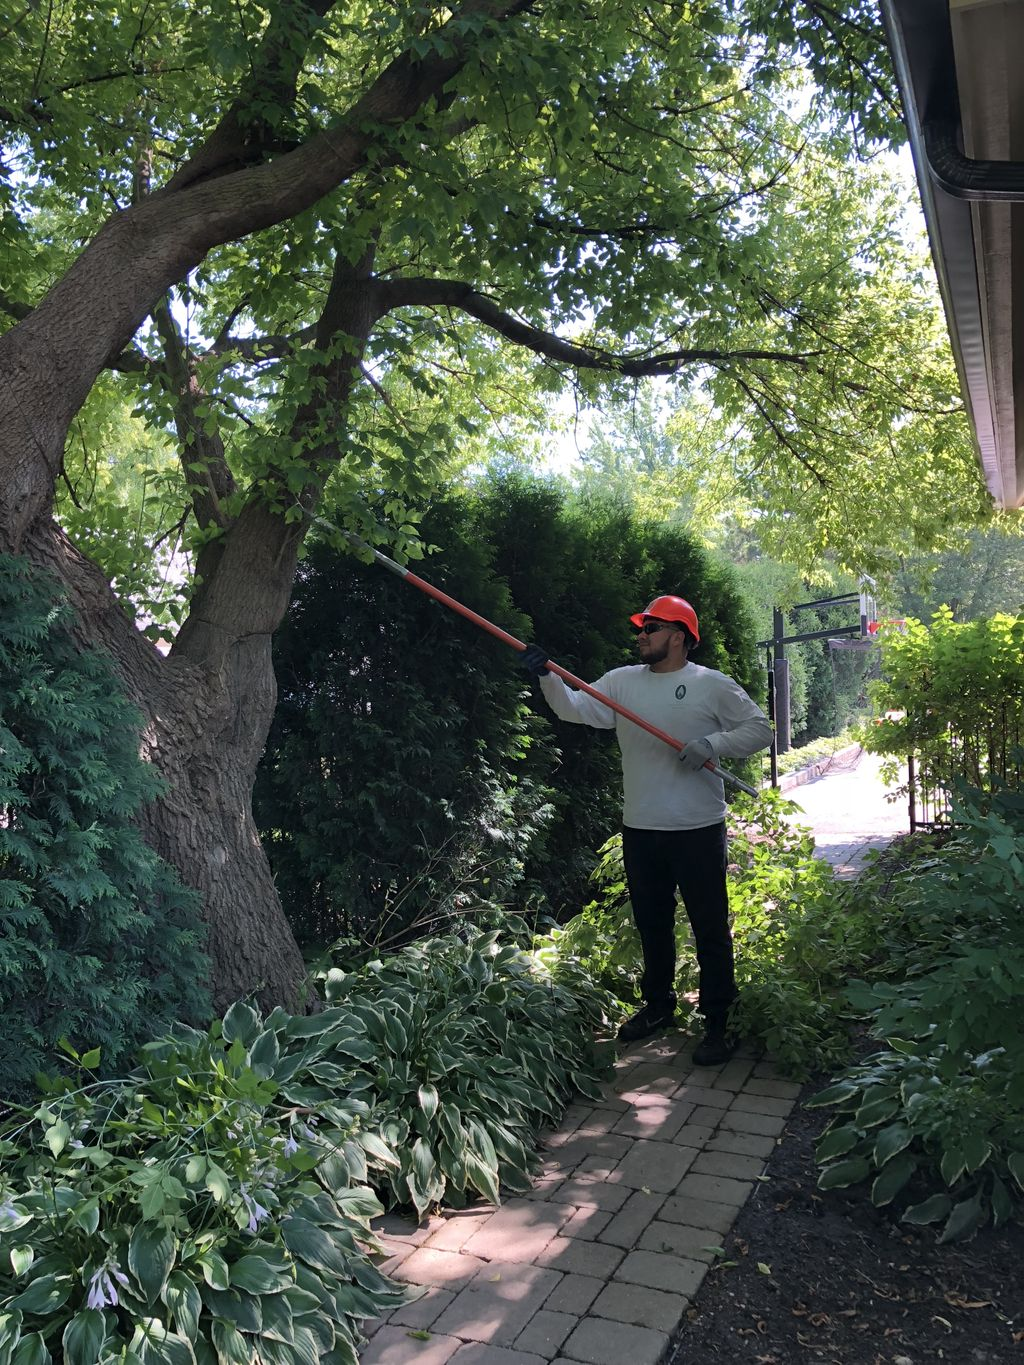 Doing tree trimming